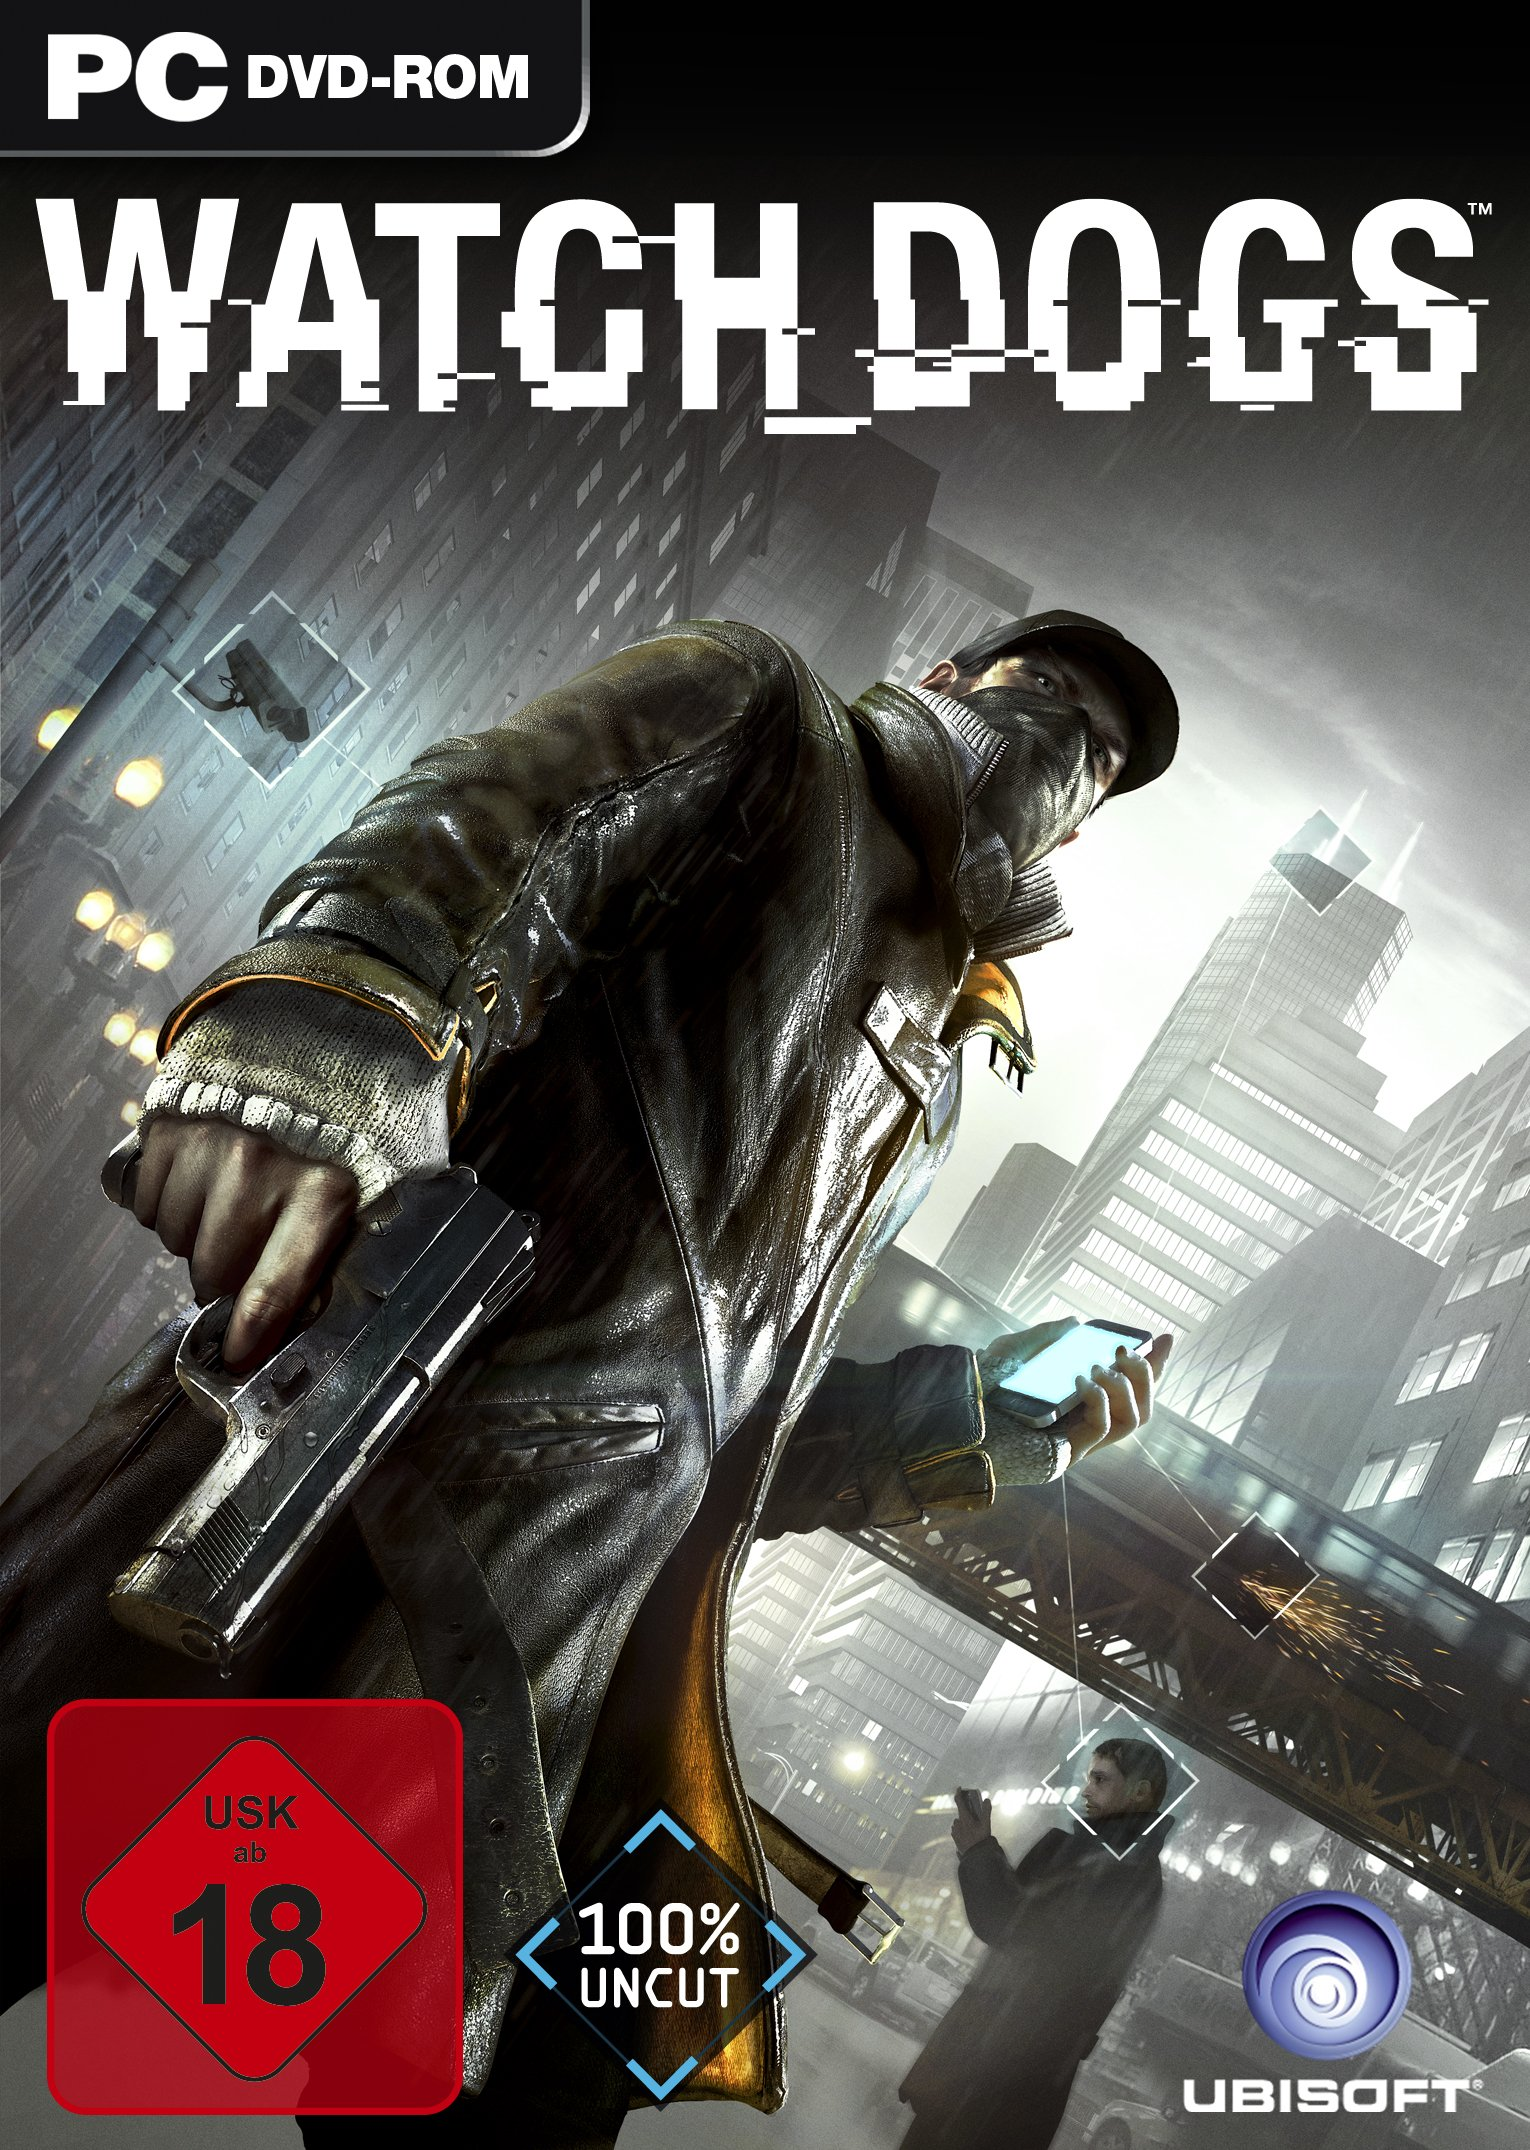 Watch Dogs Complete Edition MULTi2 – x.X.RIDDICK.X.x